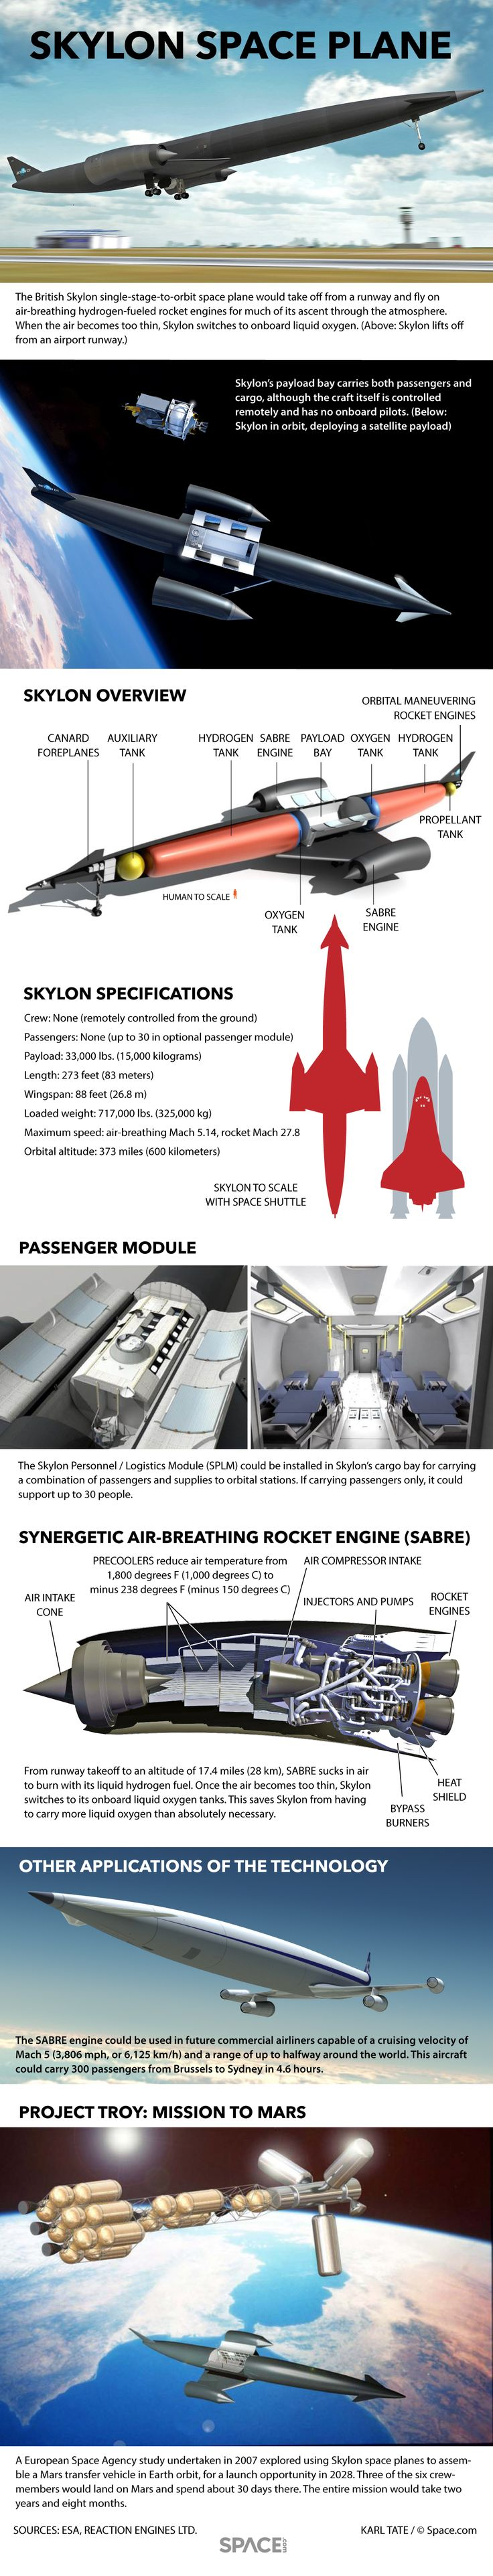 How The British Skylon Space Plane Works Infographic By Karl Tate Infographics Artist See More At Htt Space And Astronomy Space Science Space Exploration